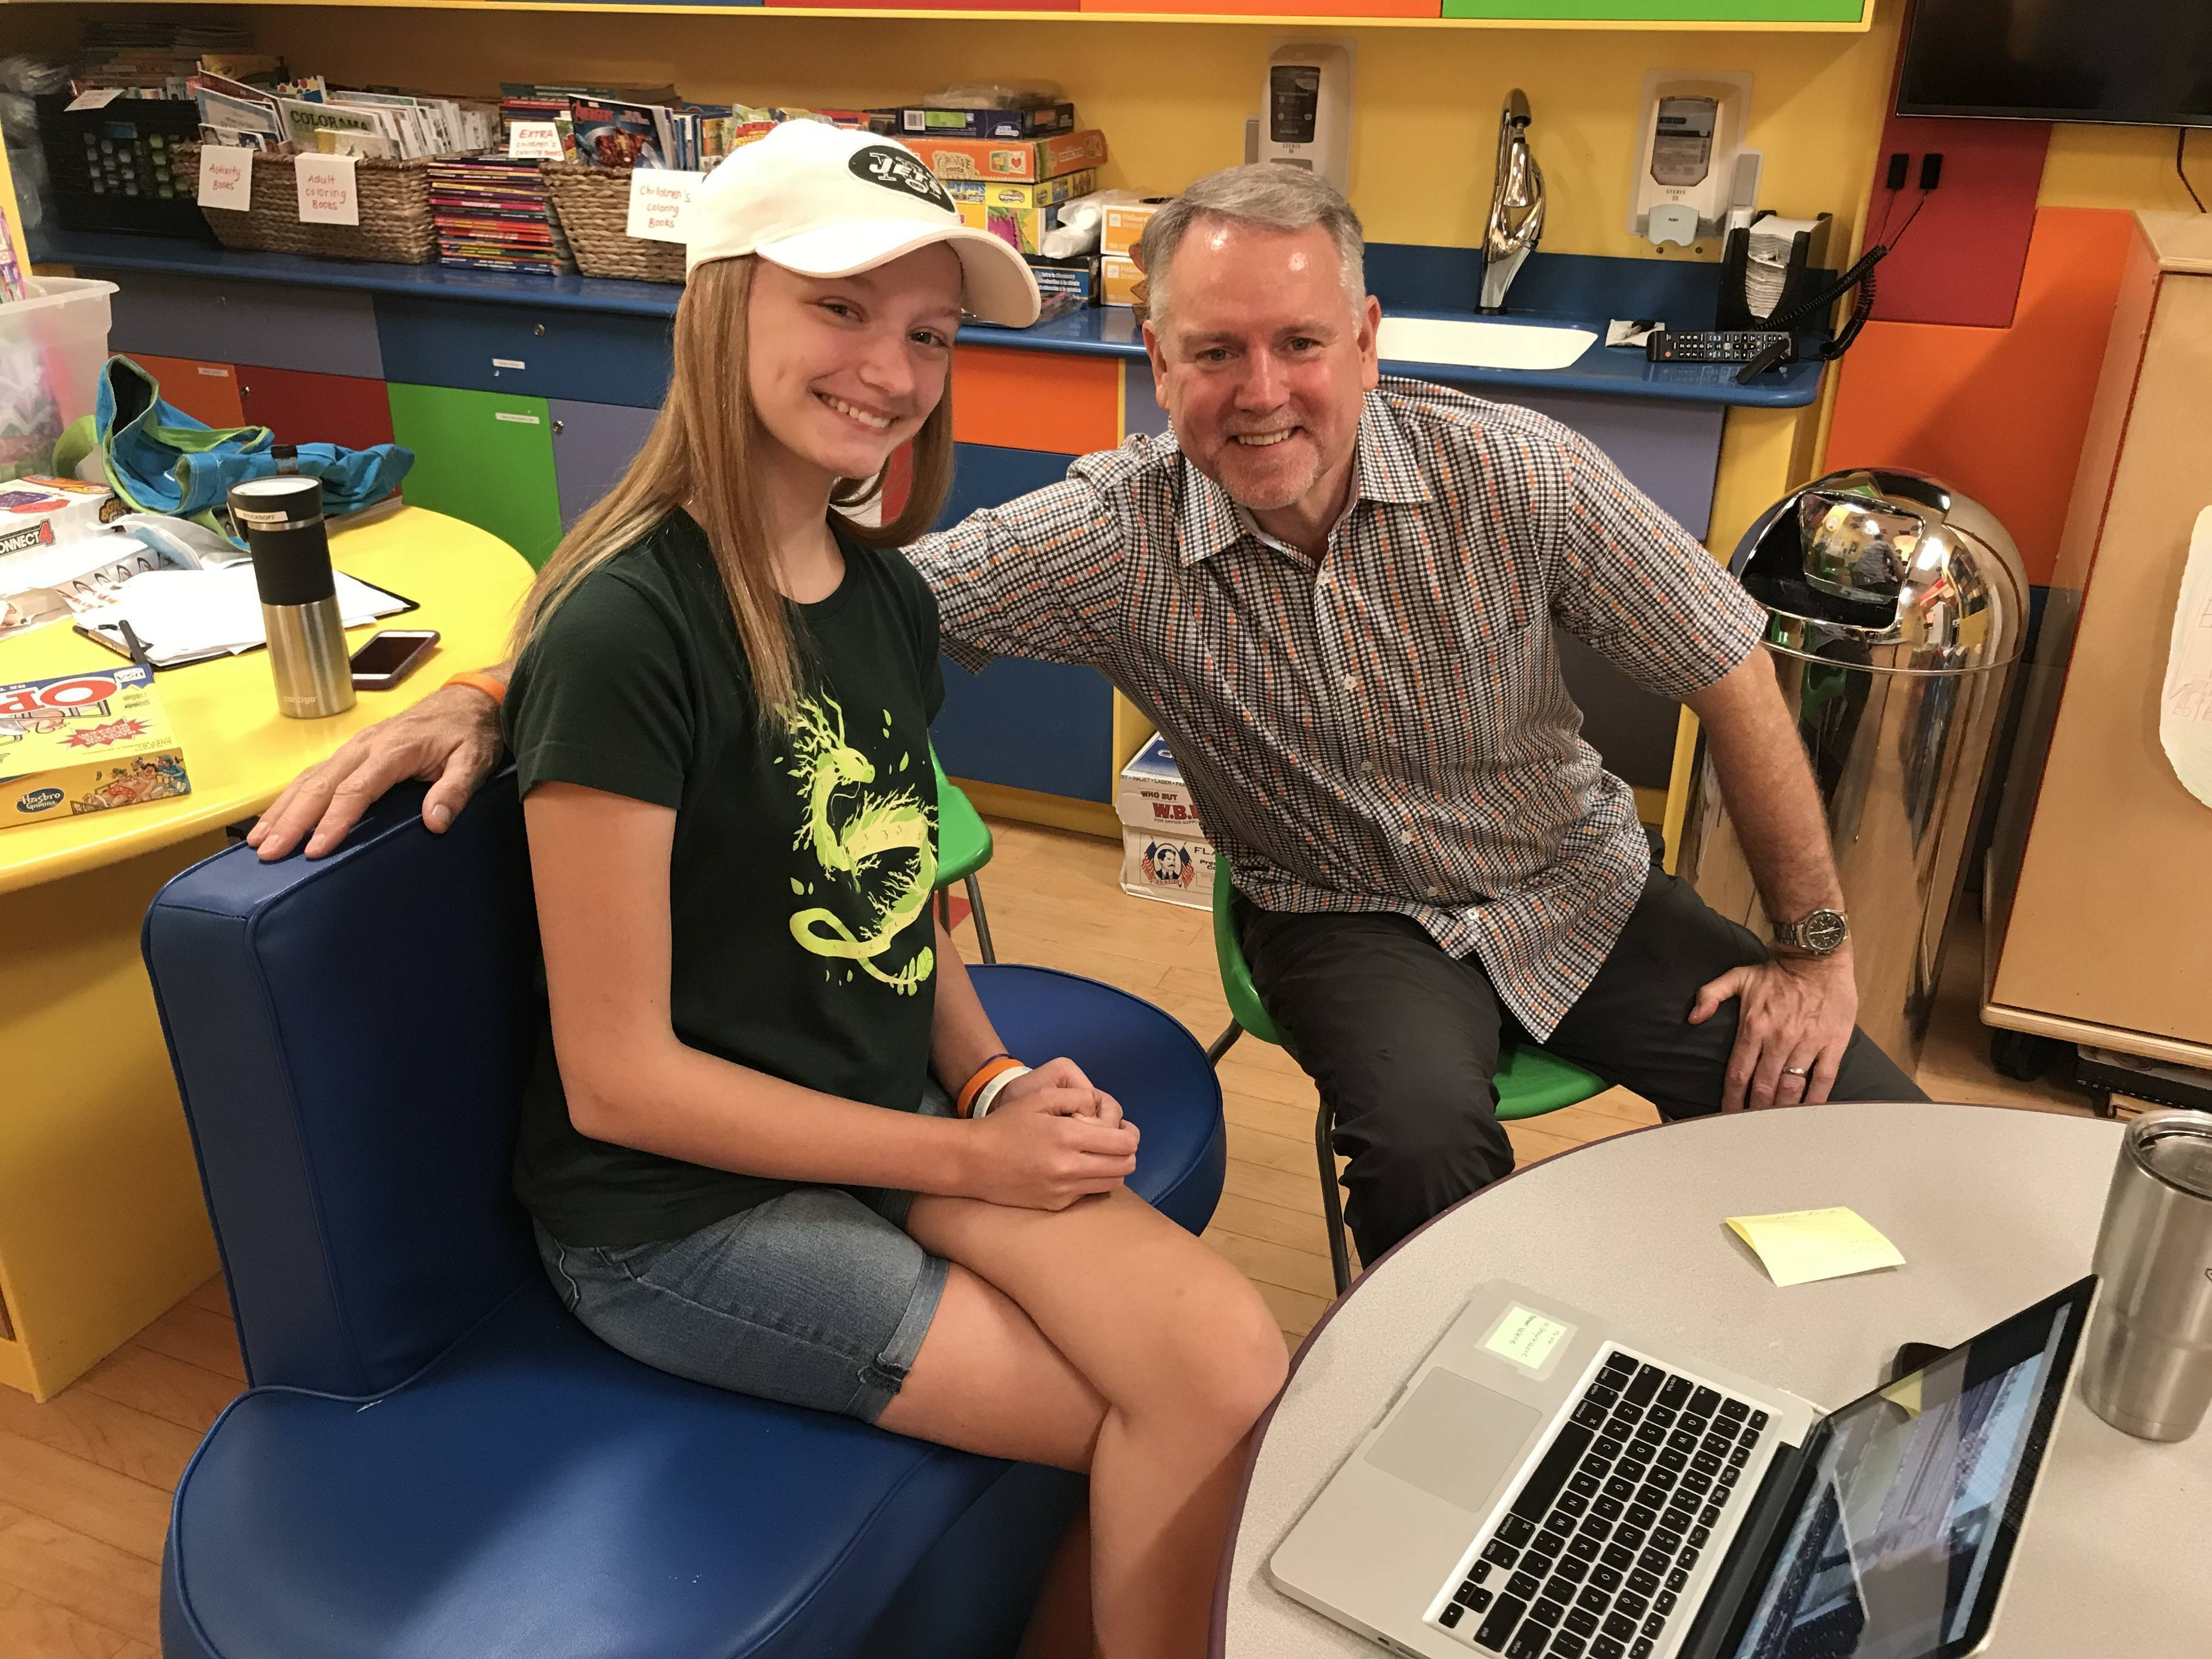 Anna and her Dad Mike at Goryeb Children's Hospital